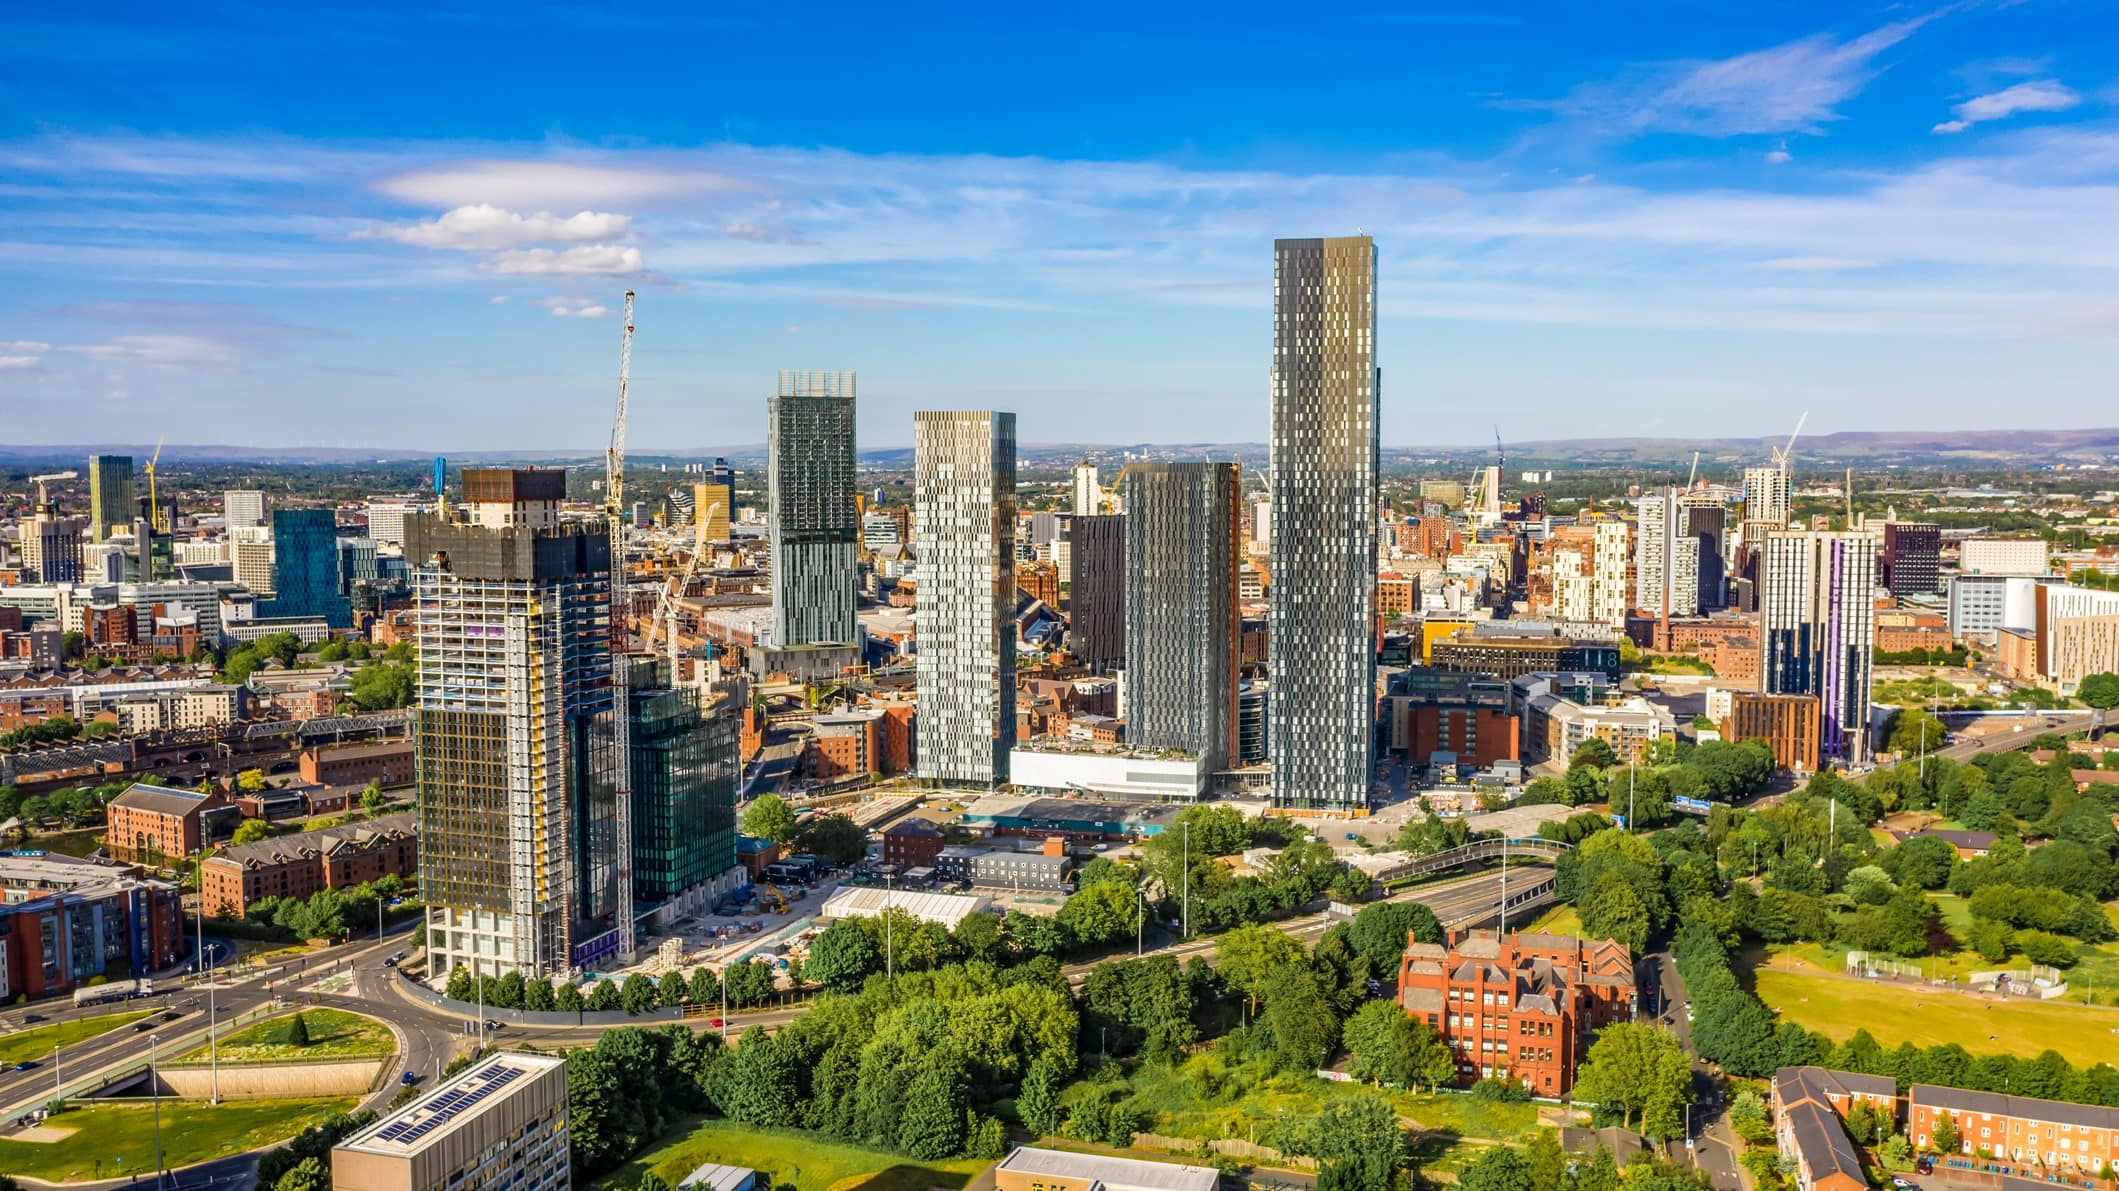 Aerial shot of Manchester UK on a beautiful summer day